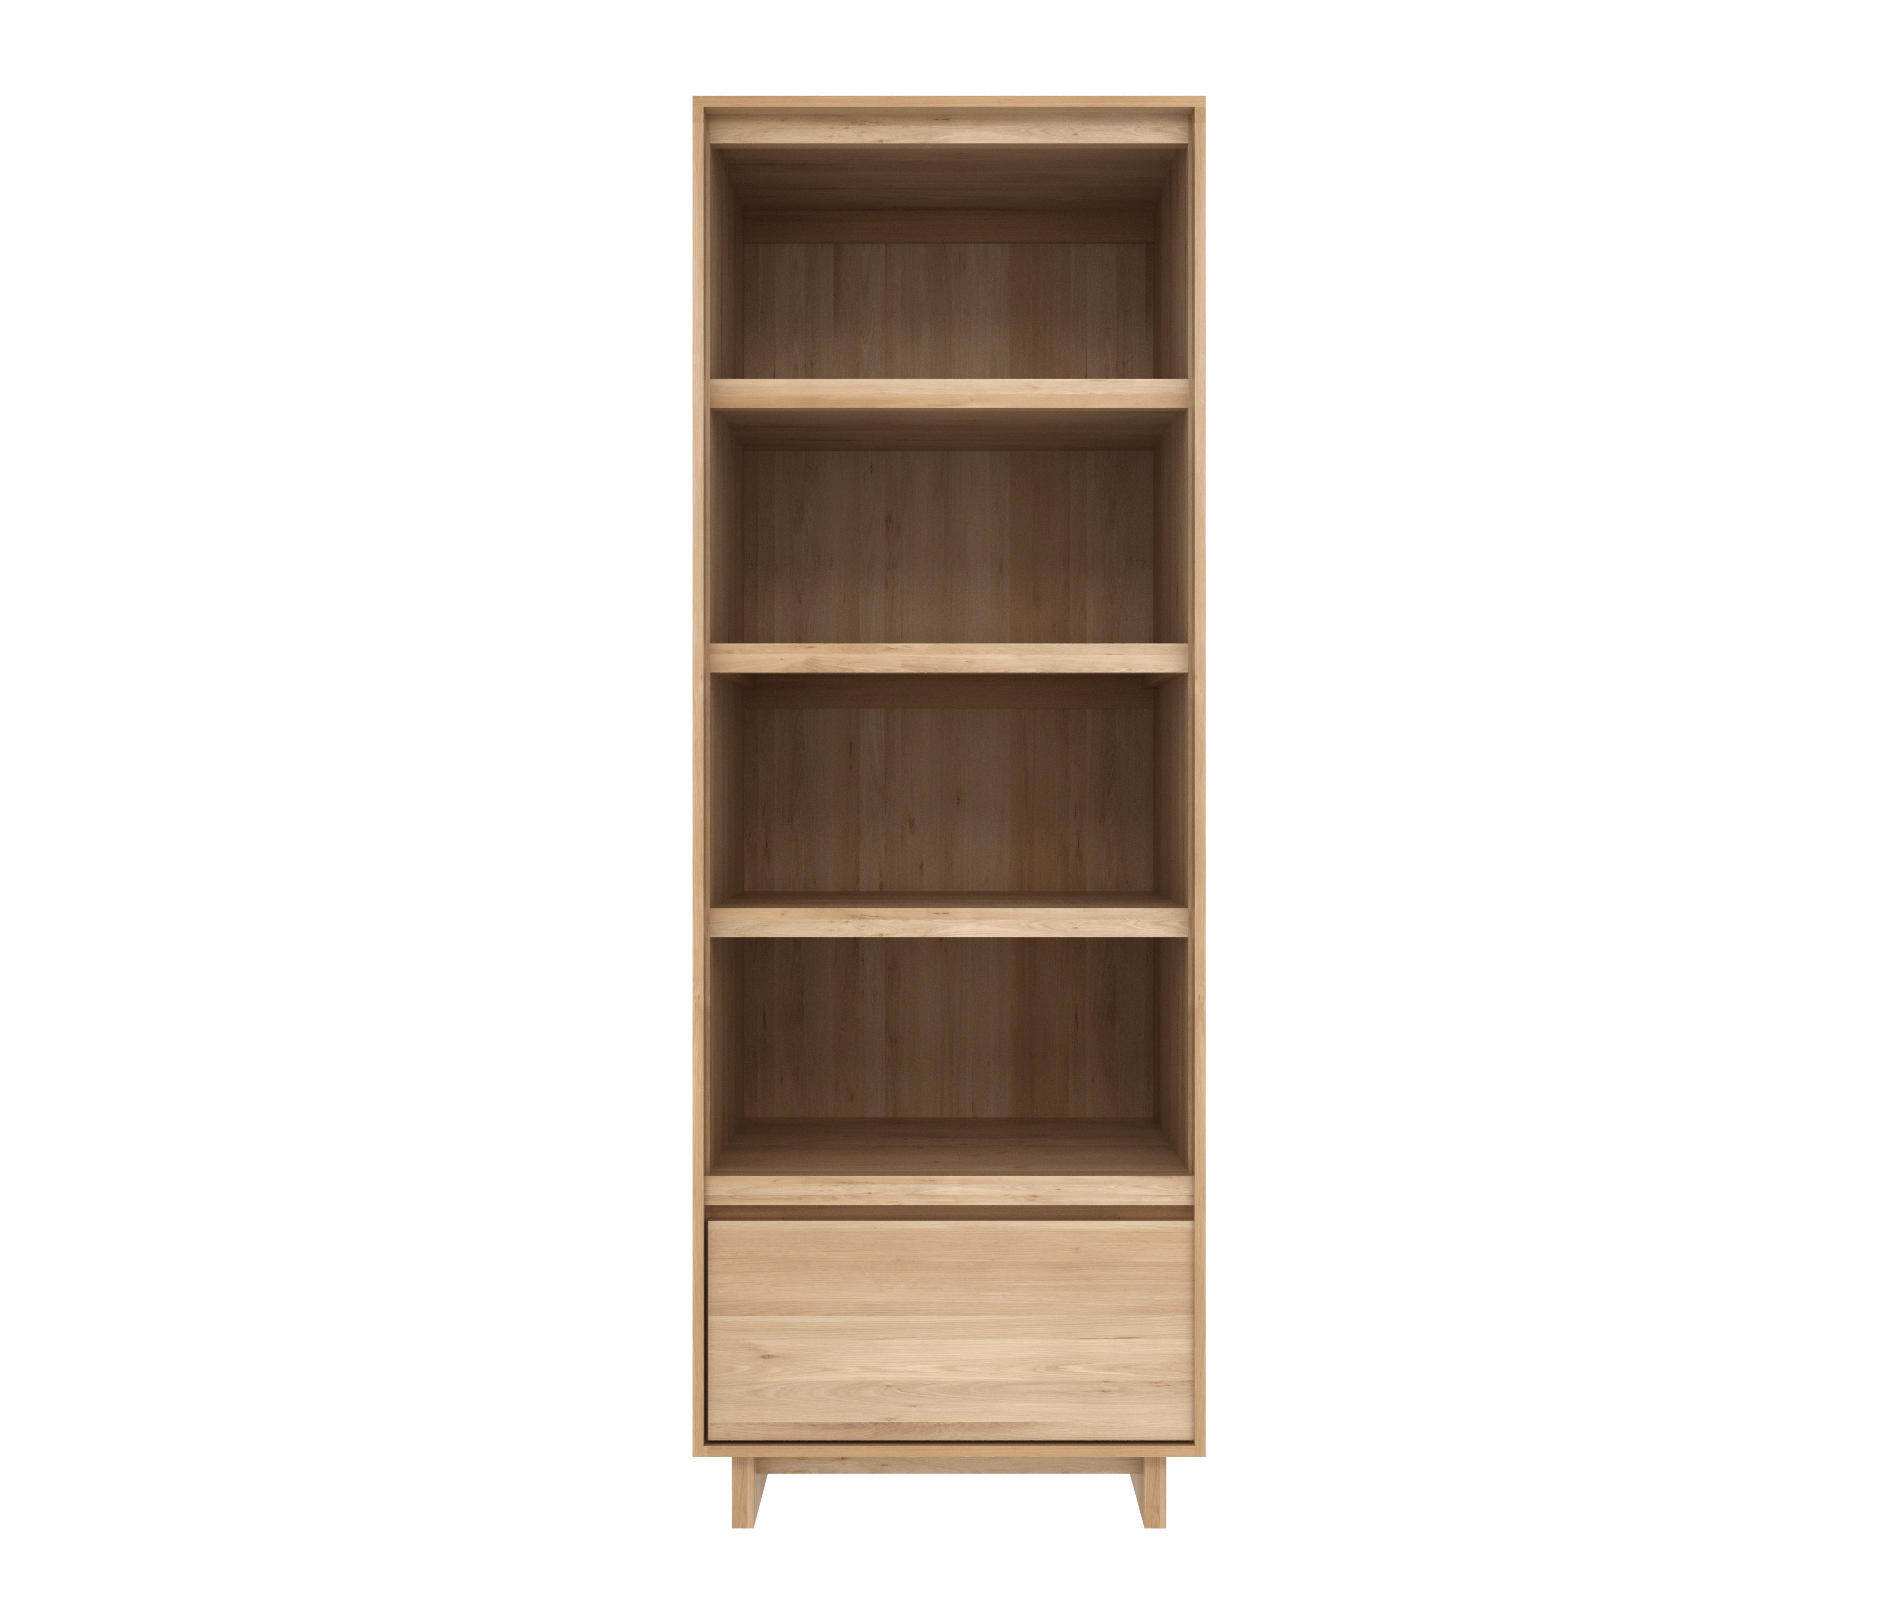 Oak Wave Book Rack Display Cabinets From Ethnicraft Architonic # Ethnicraft Meuble Tv